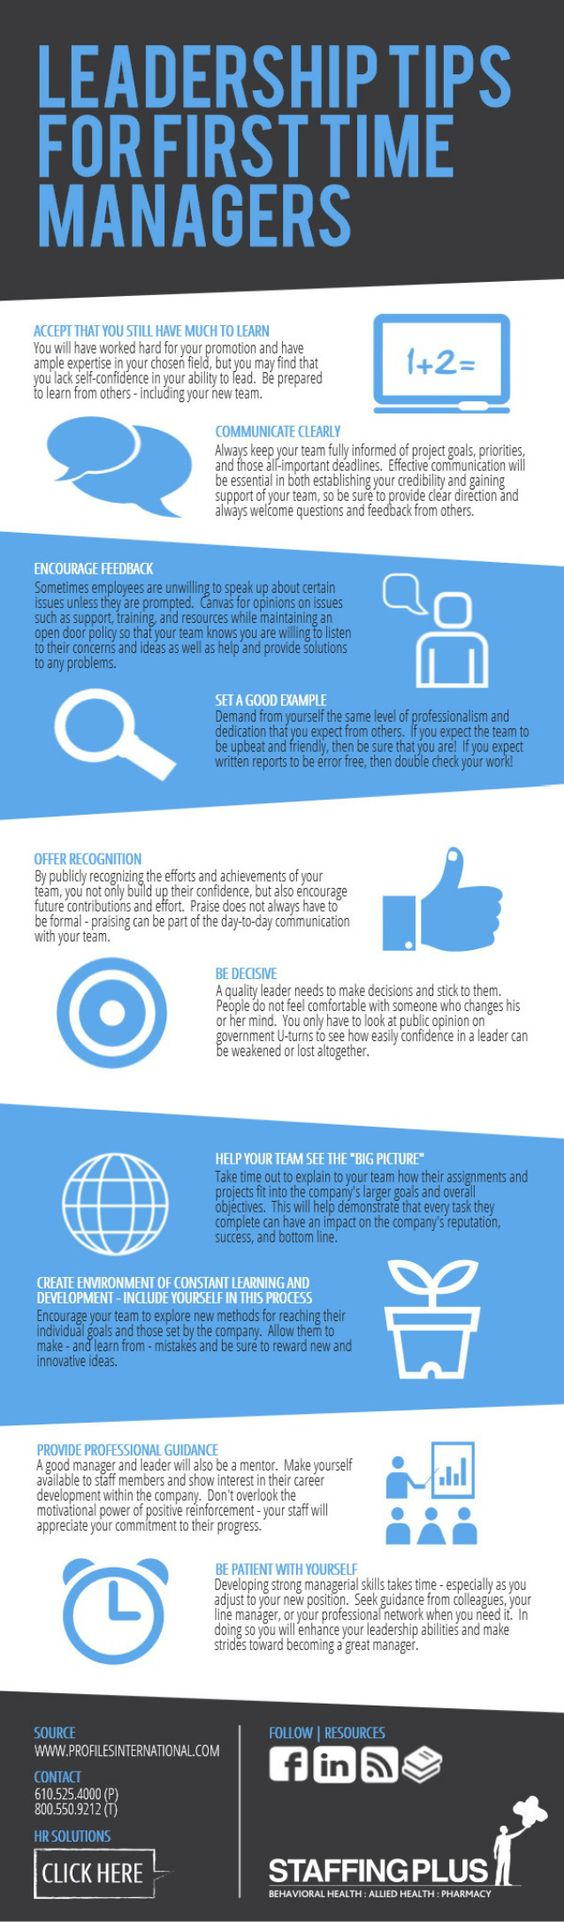 Leadership tips for first time managers #infografia #infographic #leadership: